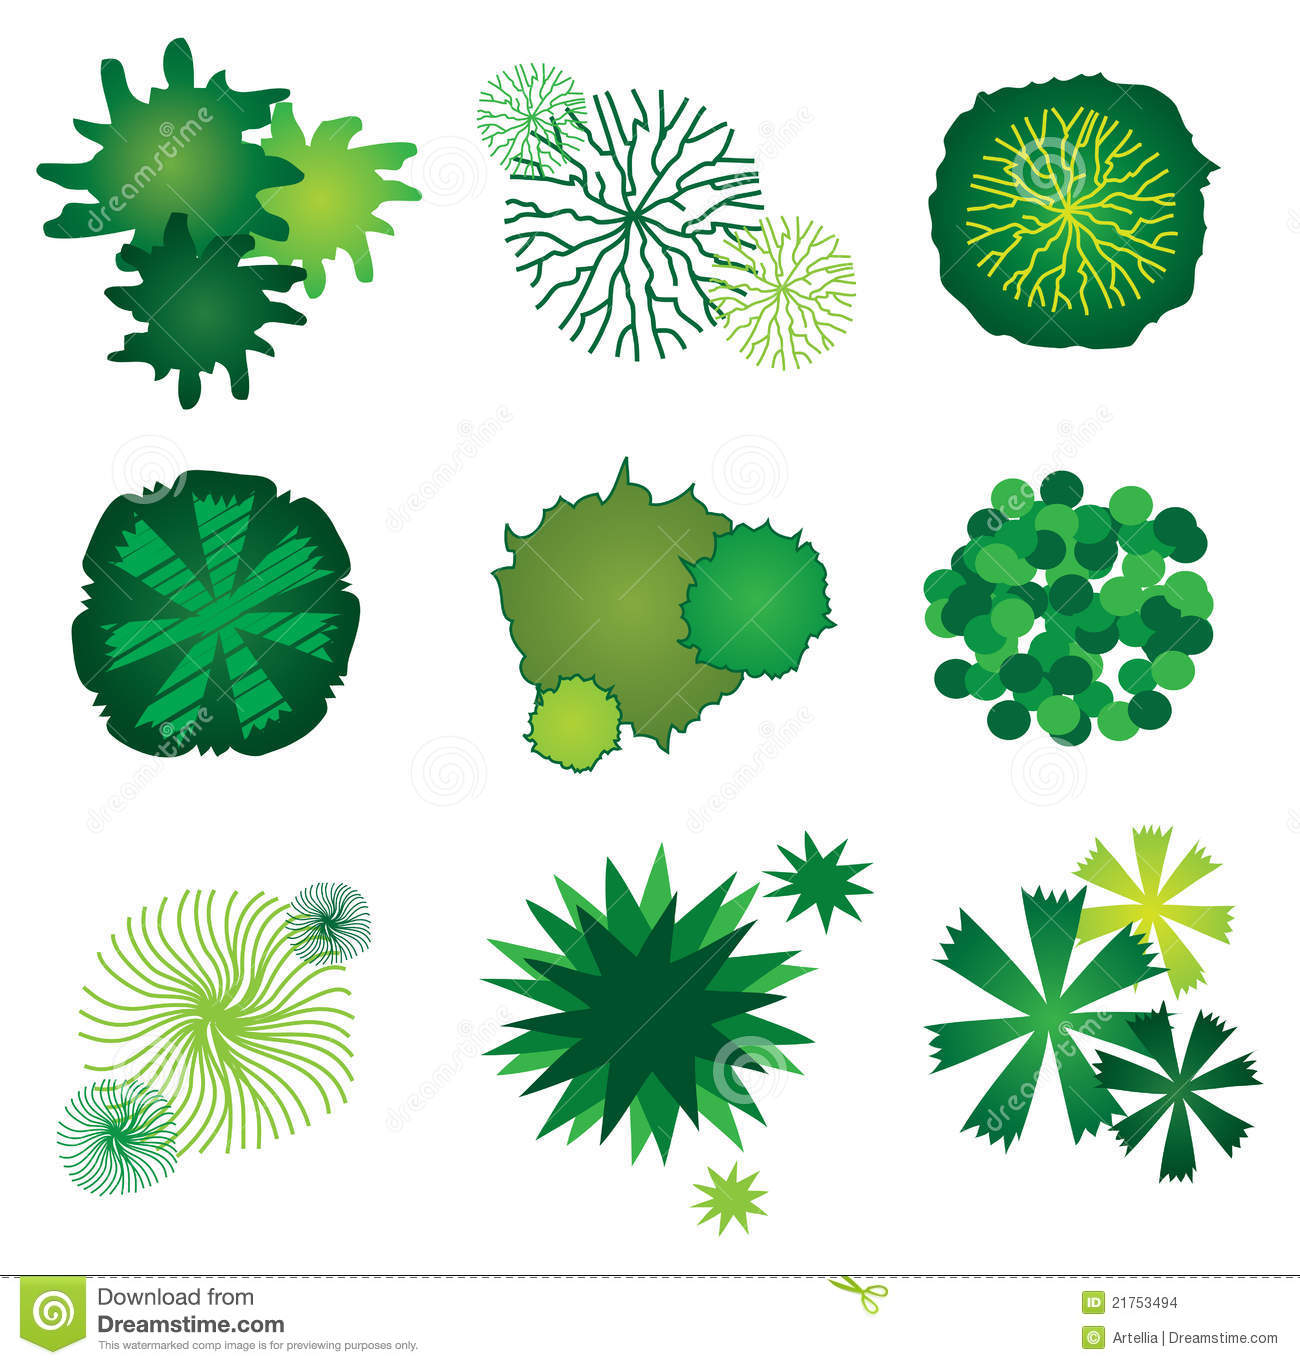 Landscaping symbols clipart clipart suggest for Landscape design icons